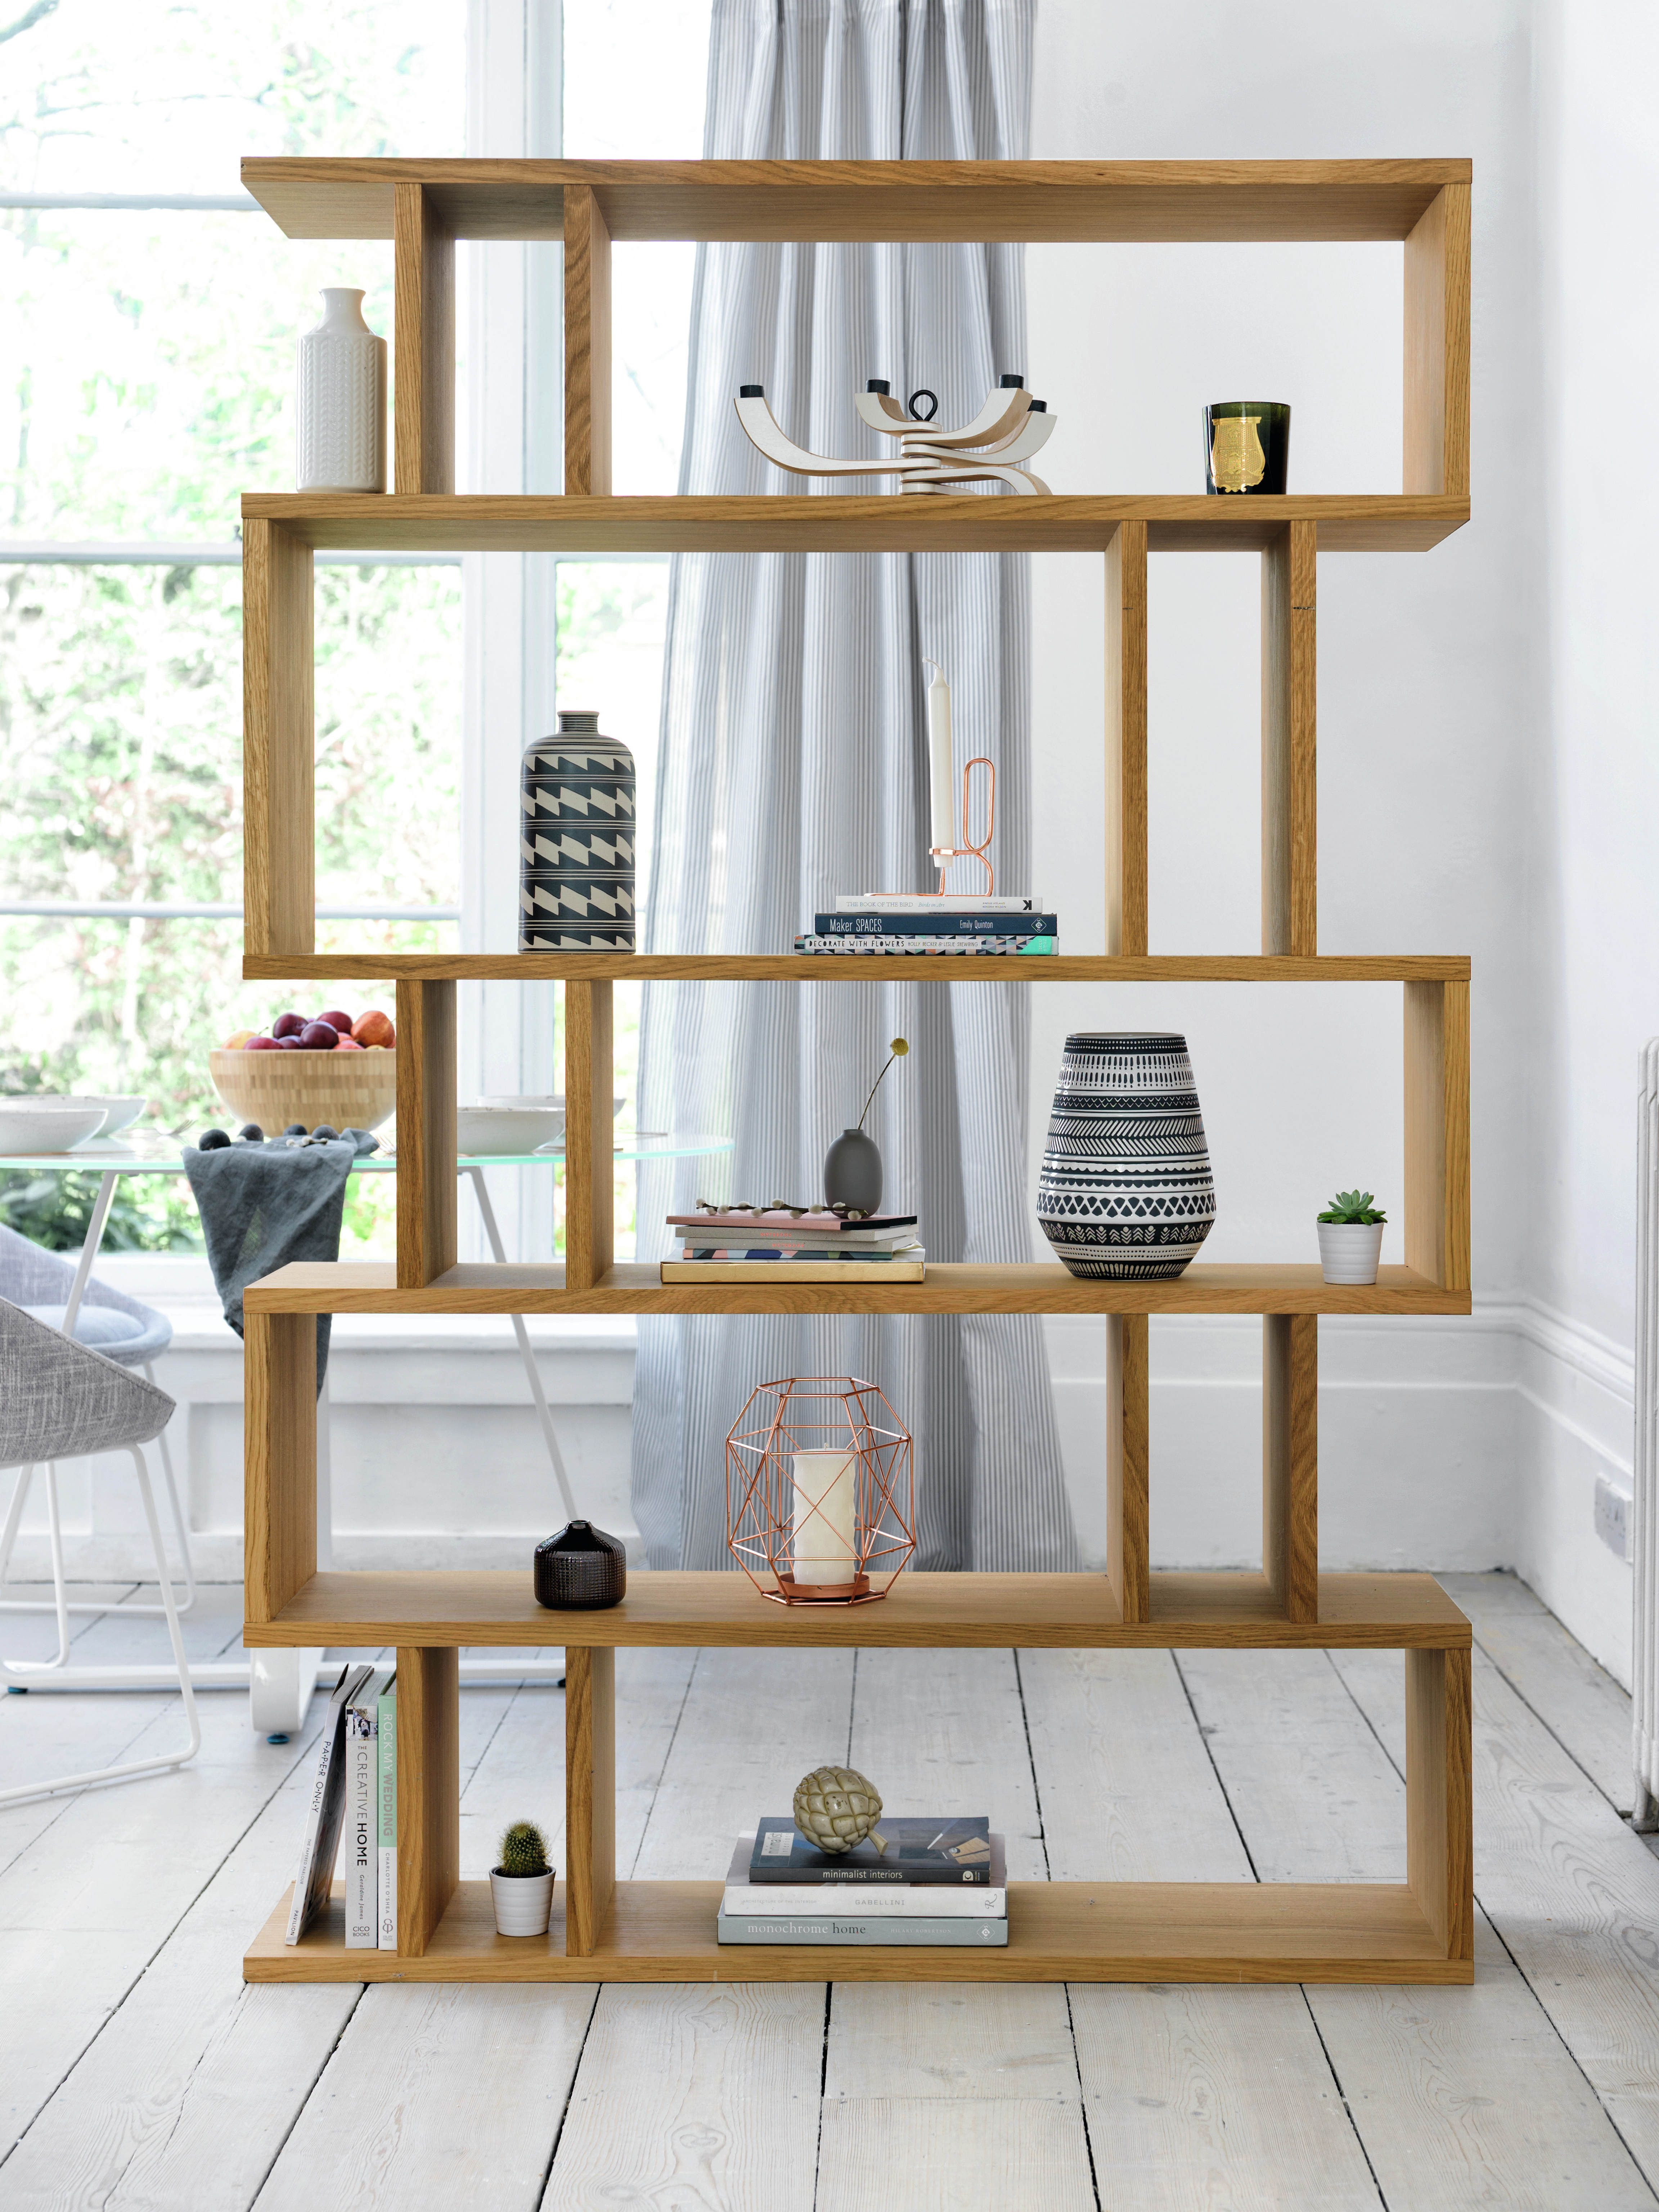 Content by Conran Elmari Tall Shelving, Furniture Village